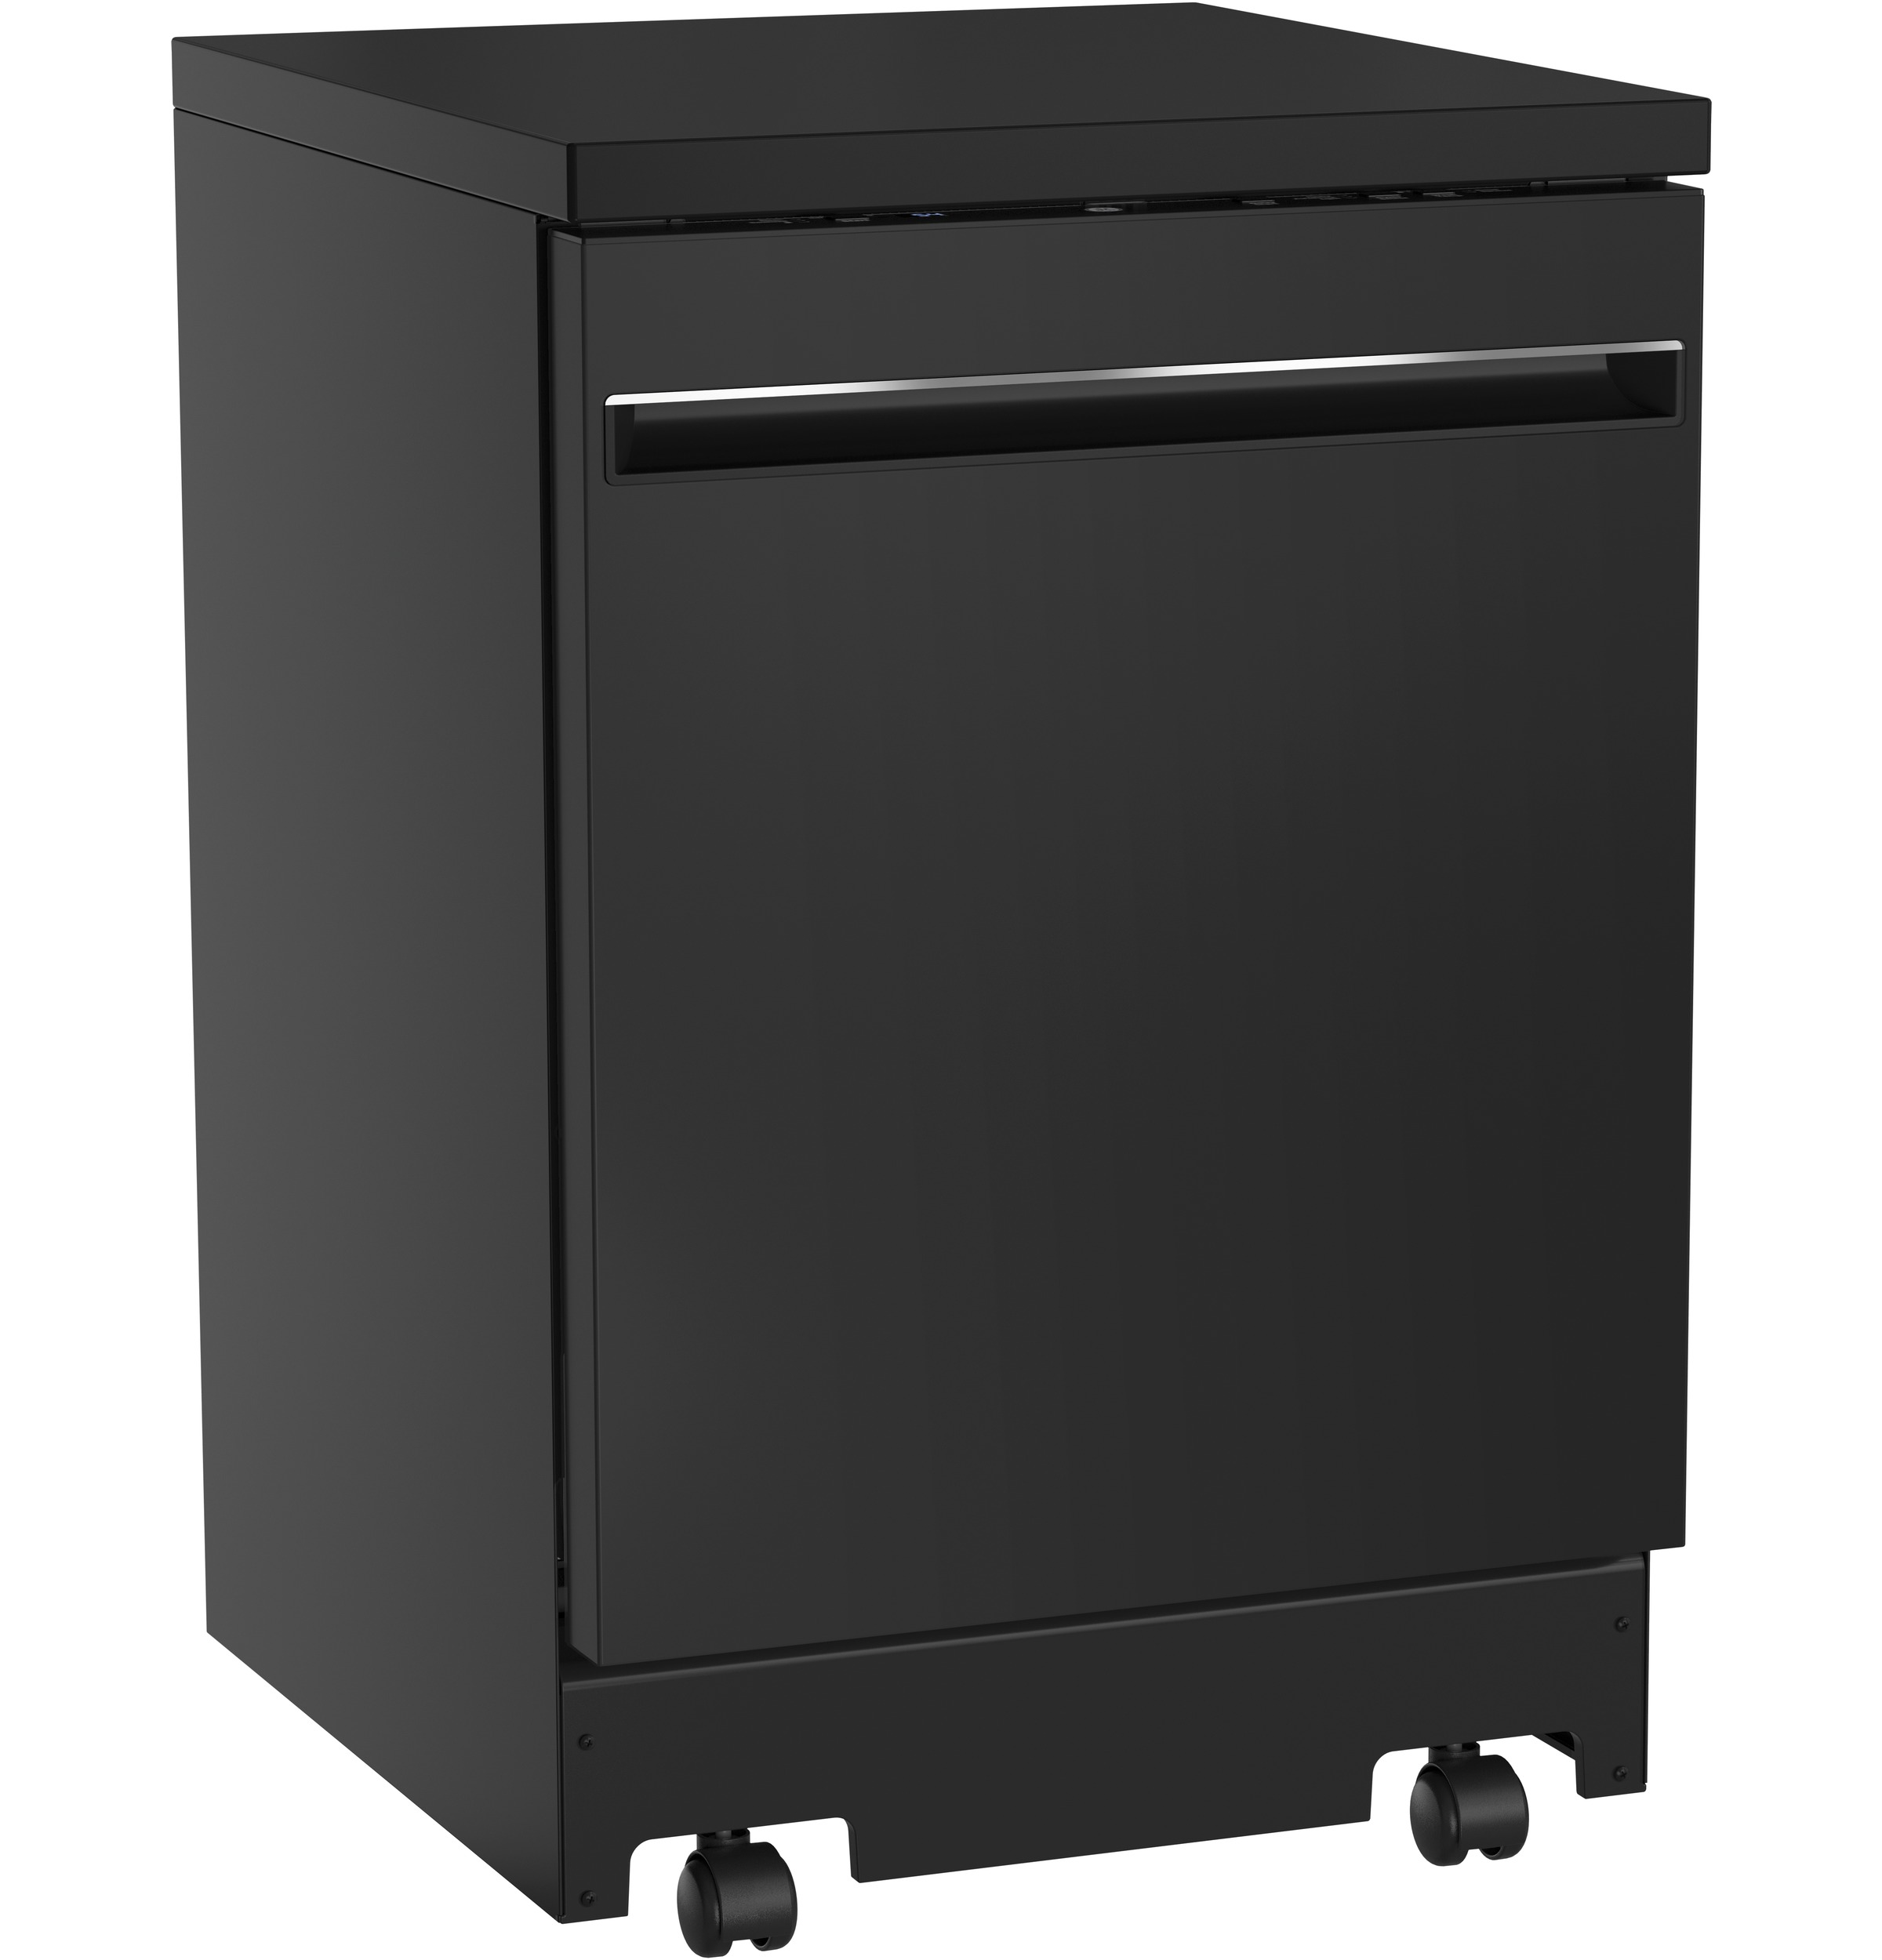 "Model: GPT225SGLBB | GE GE® 24"" Portable Dishwasher"